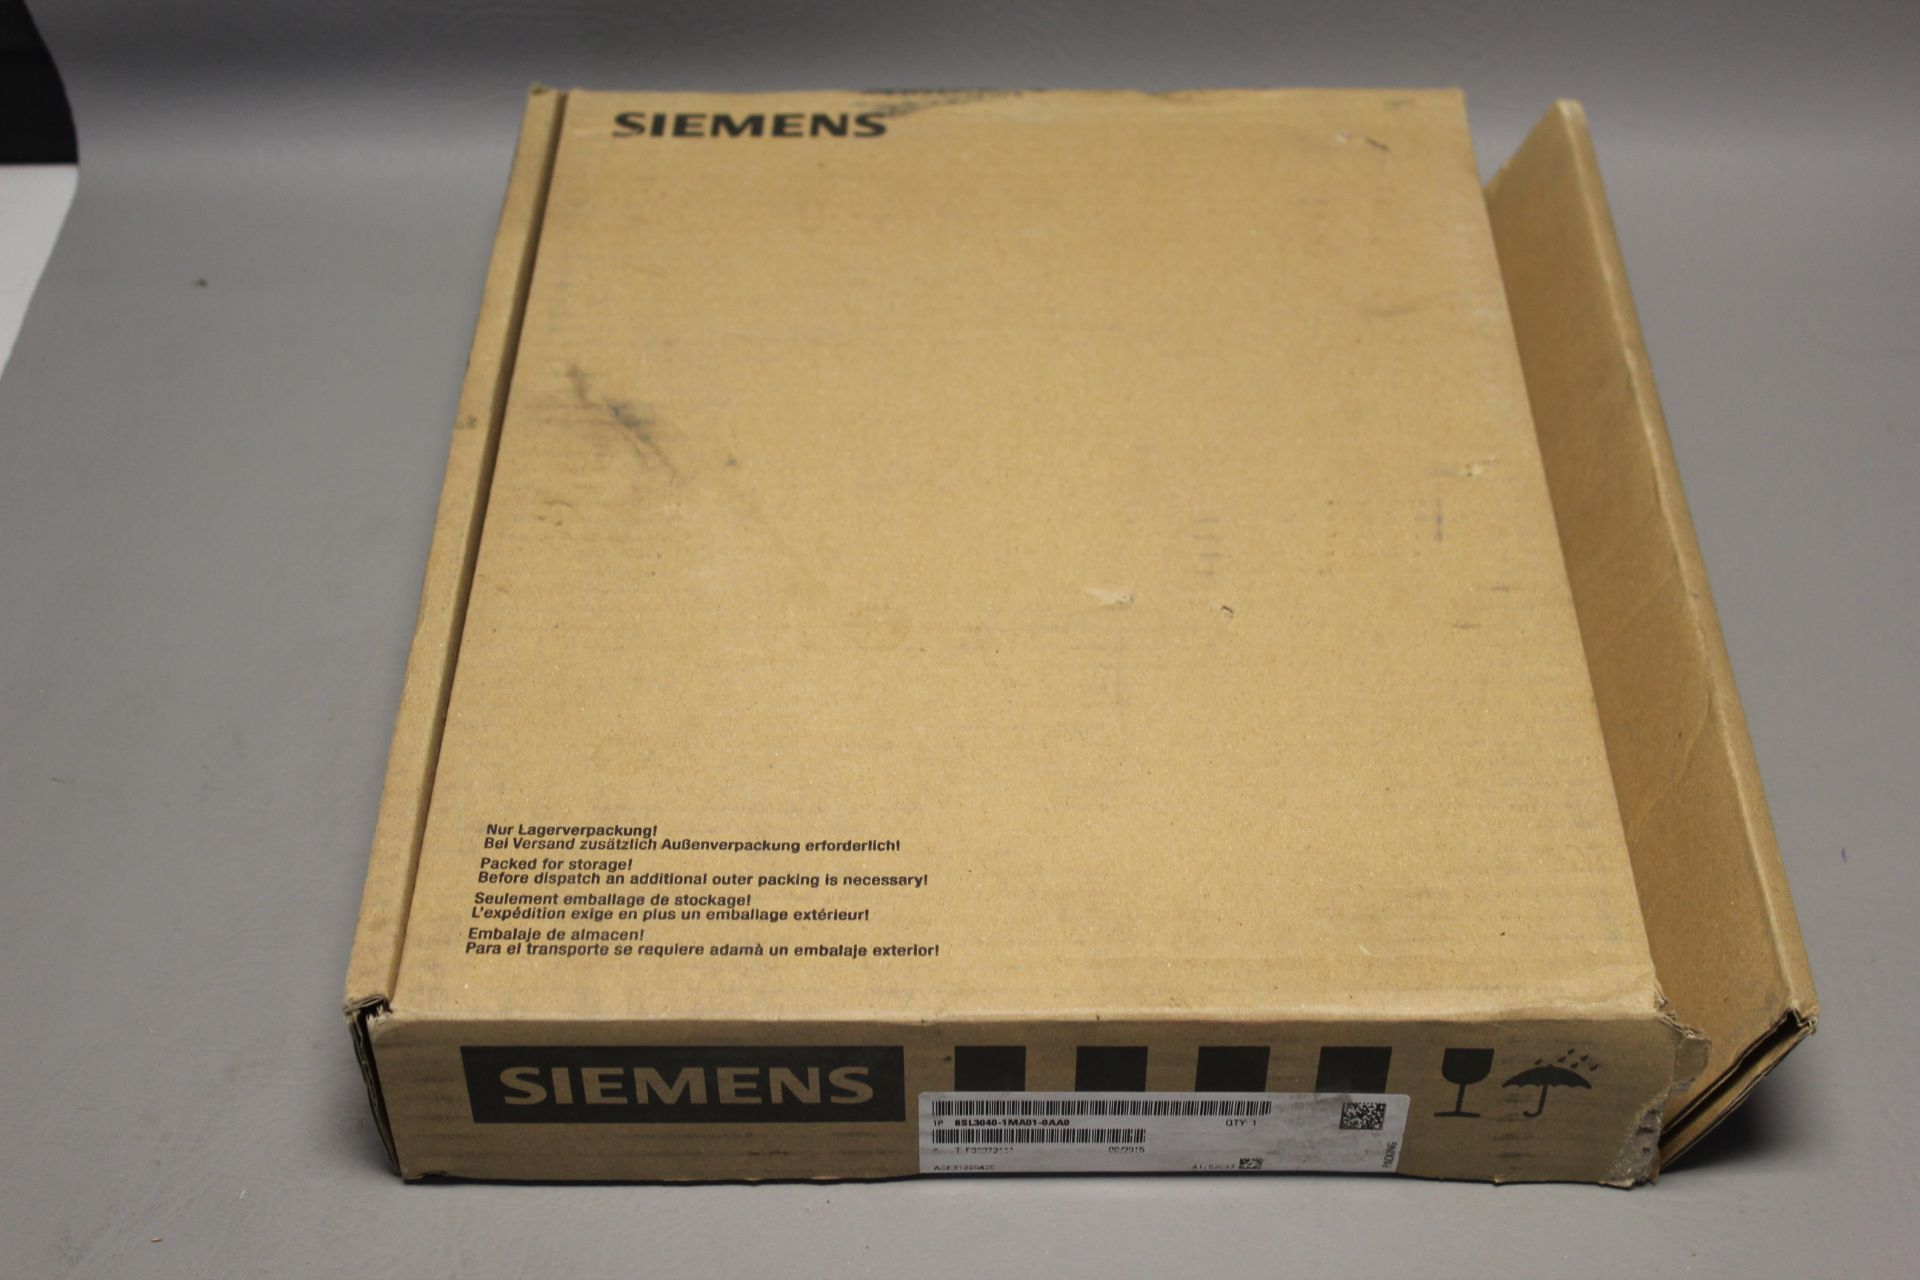 NEW SIEMENS SINAMICS FREQUENCY CONVERTER CONTROL UNIT